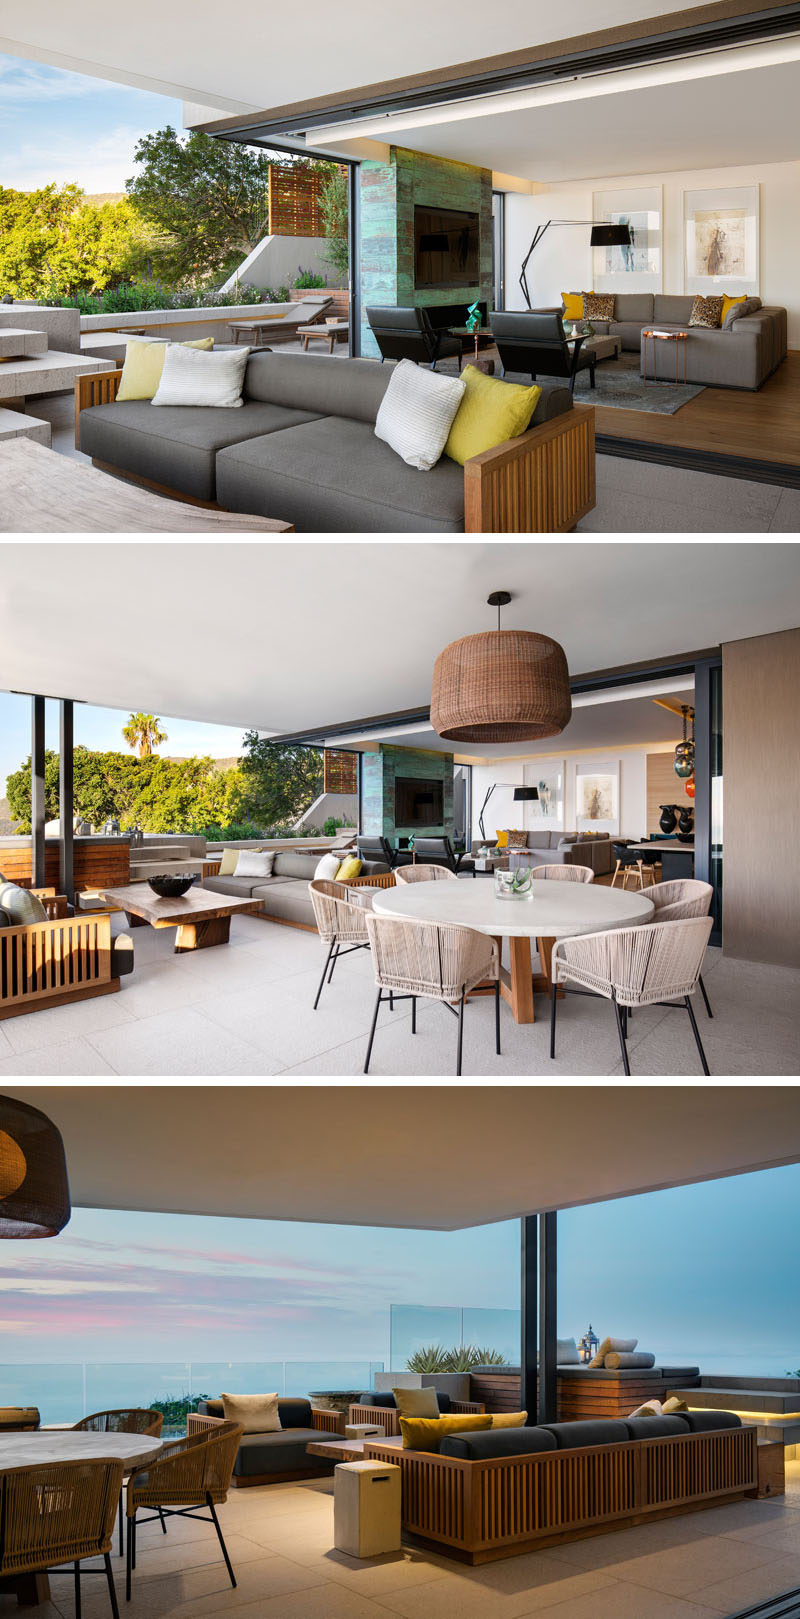 Glass pocket doors slide into the fireplace cavities, and open up this modern lounge area to the outdoor terrace and side garden. The terrace is equipped with an outdoor kitchen, dining and living space, all positioned to take advantage of the ocean views. #OutdoorSpace #OutdoorDining #OutdoorLivingRoom